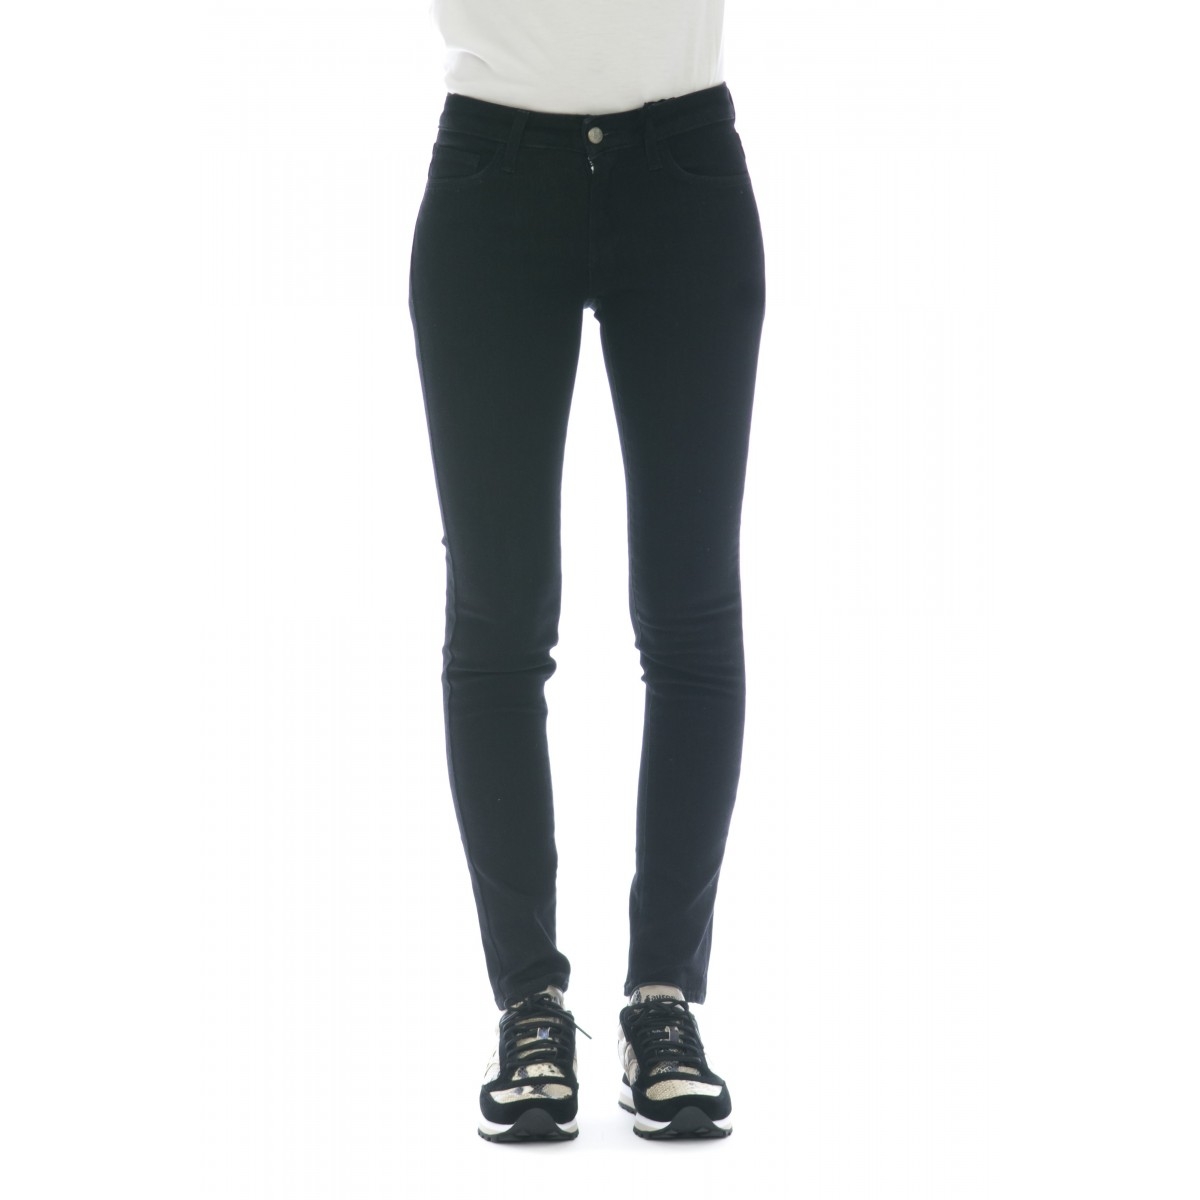 Jeans - Pushup black rinse